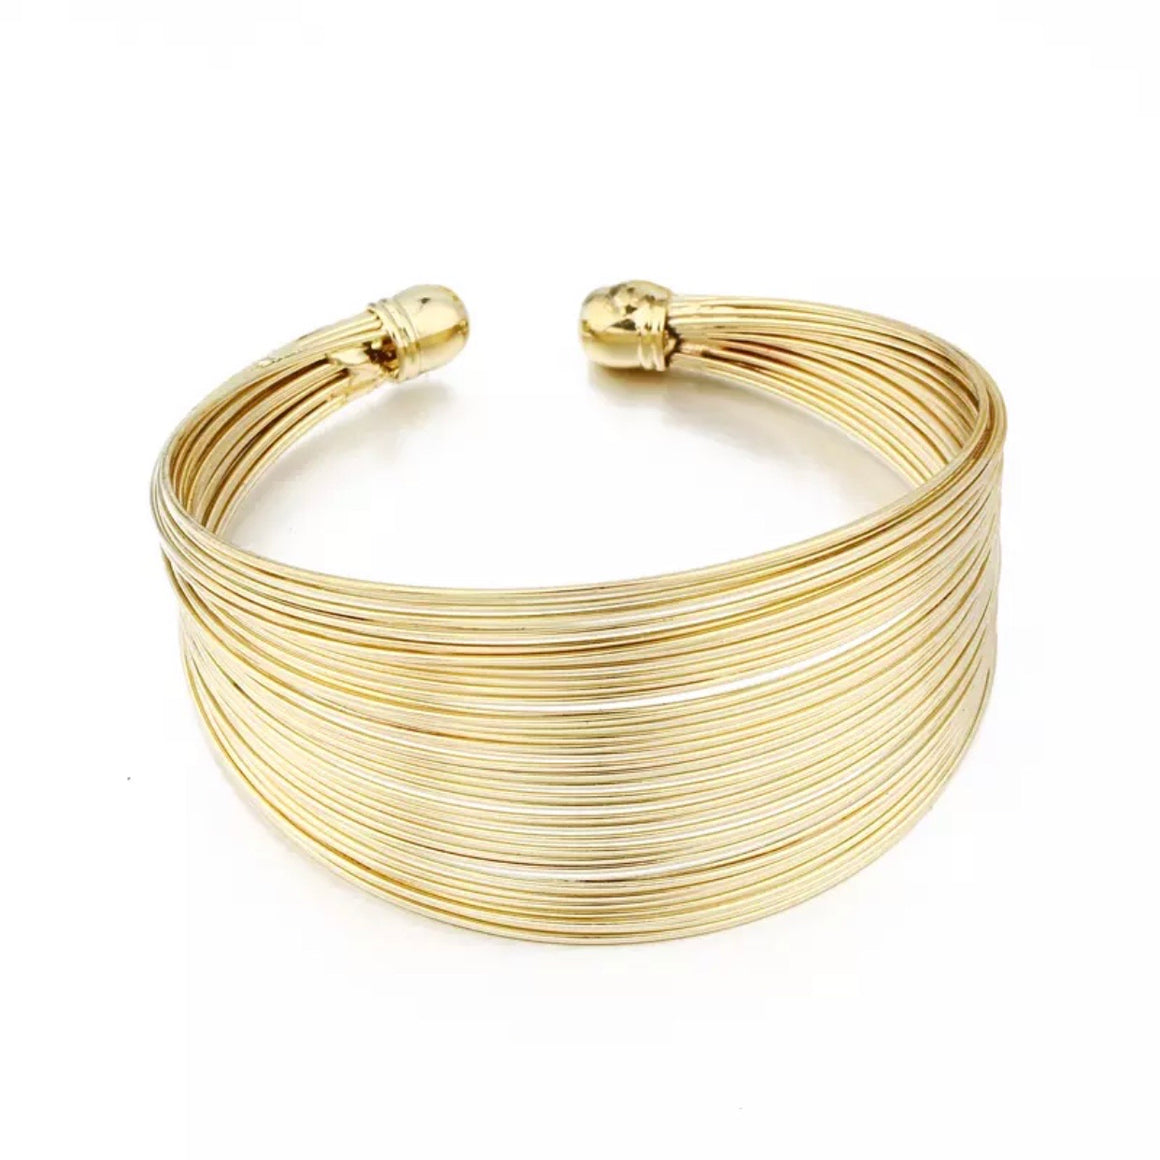 SMALL WIRE WRAPPED GOLD CUFF